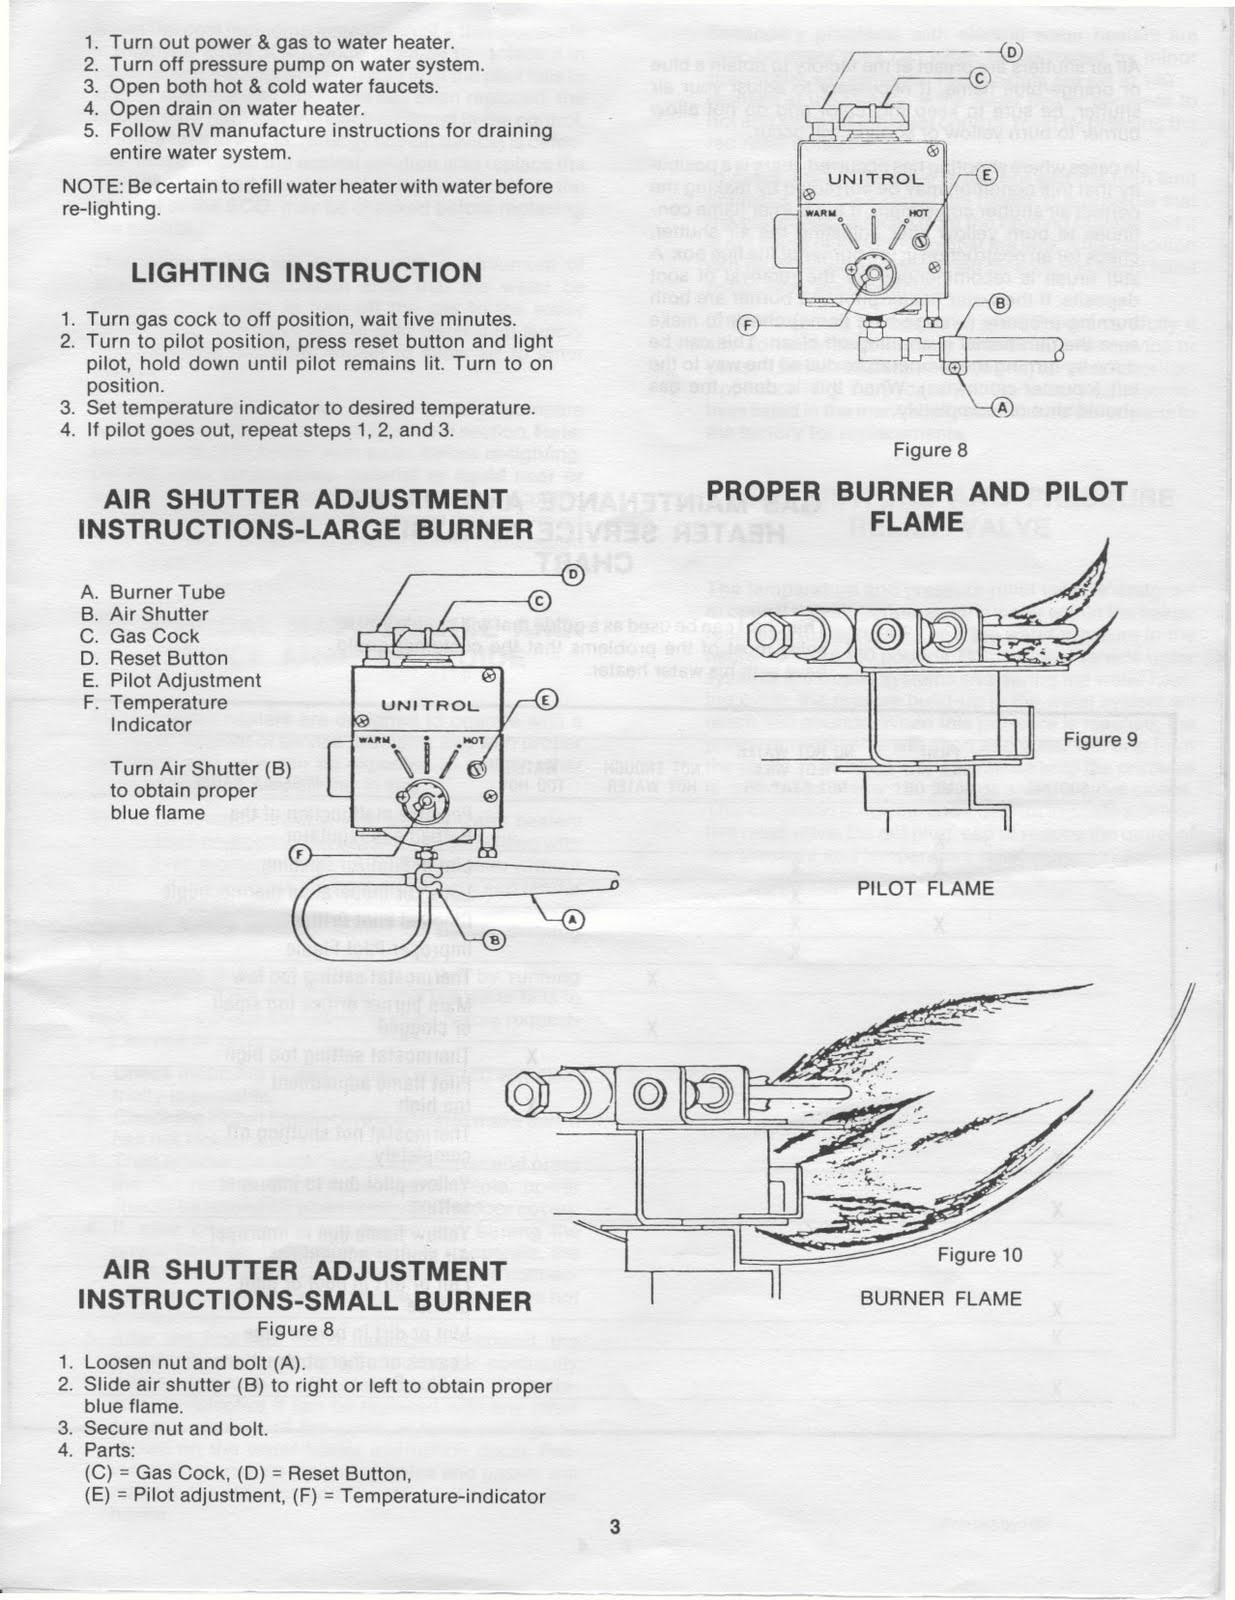 small resolution of mor flo water heater installation and service manual 6500015